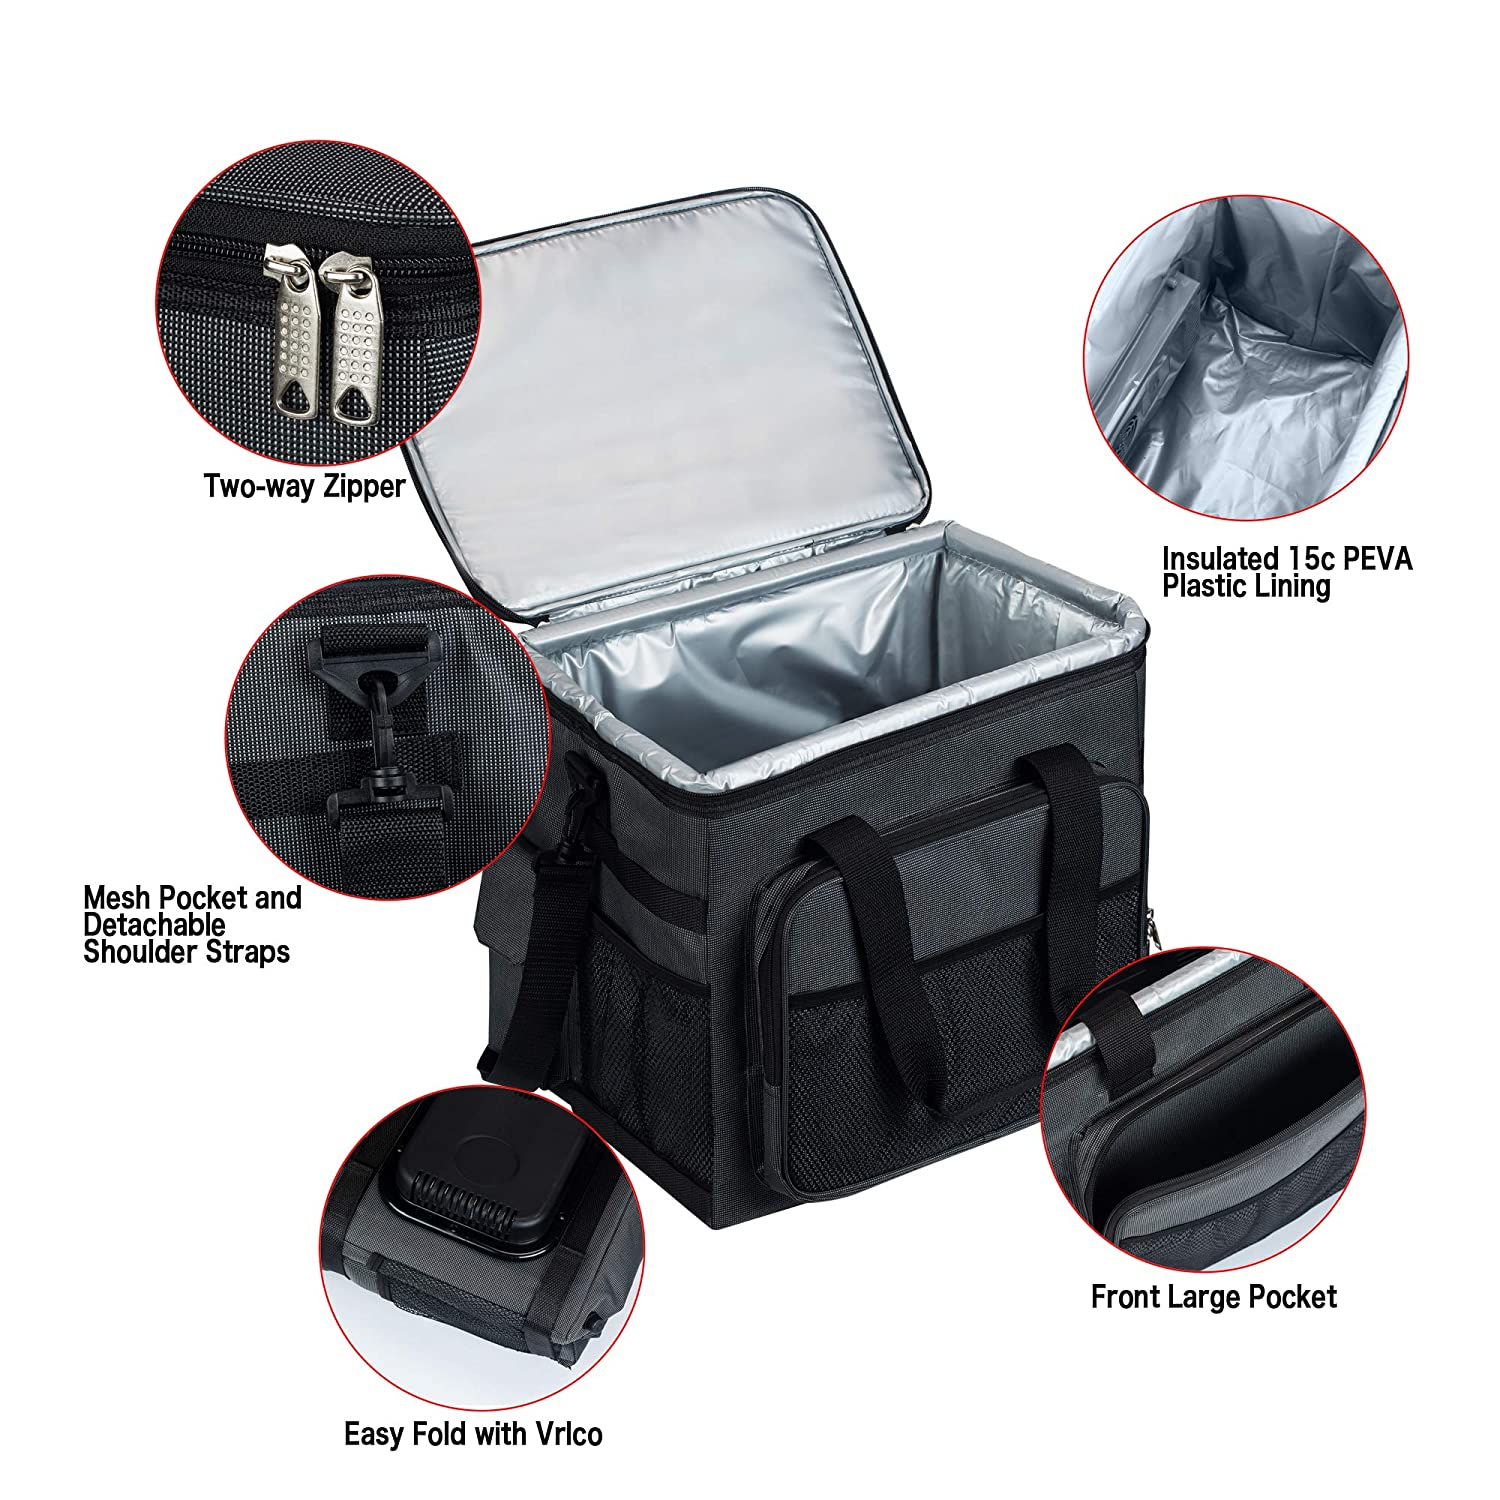 Electric Cooler Bag Collapsible Portable Thermoelectric Car Connect Refrigerator Keep Hot//Cold//Fresh for Hours Folding Waterproof Insulation Soft-Sided Bag with Large Capacity for Travel NEW ARRIAL!